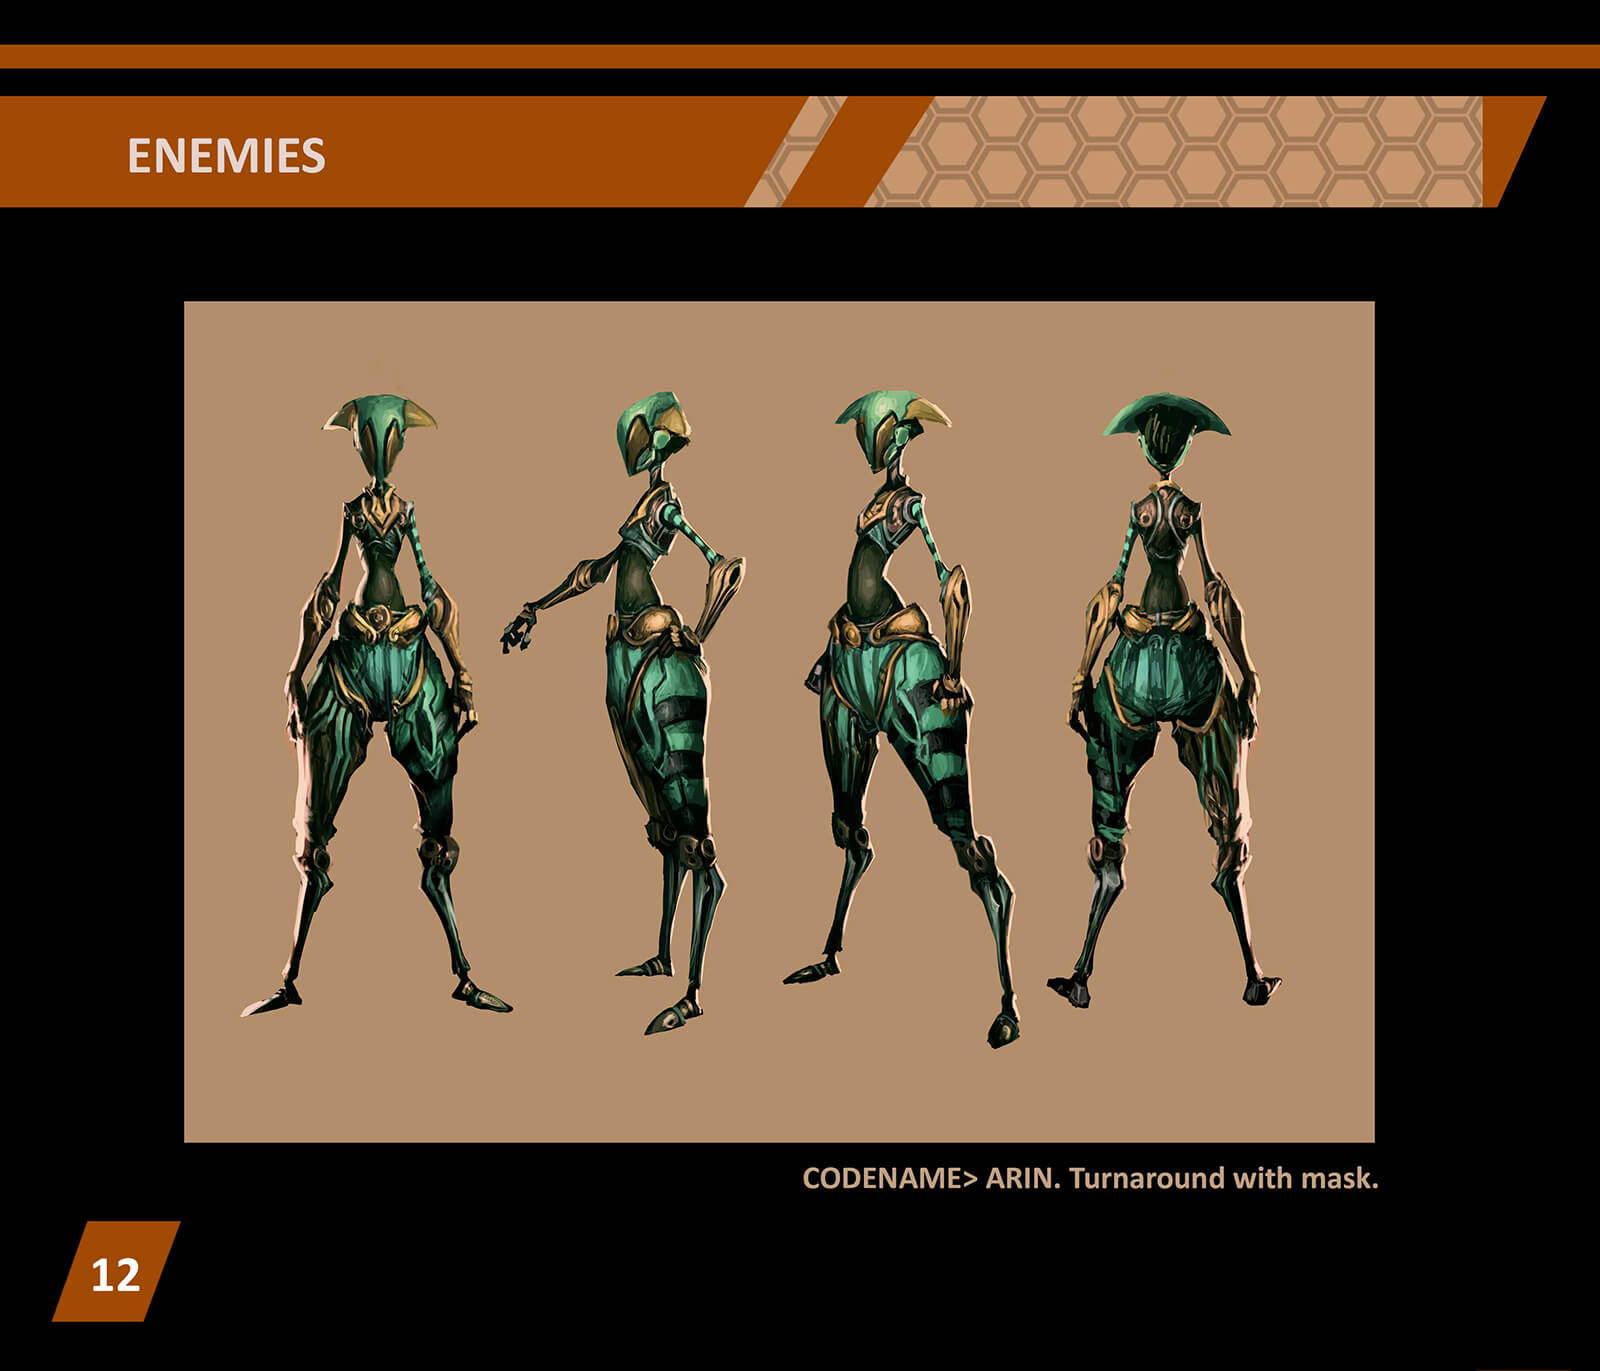 Character design turnaround of an abstractly proportioned woman standing in ornate emerald battle gear and face mask